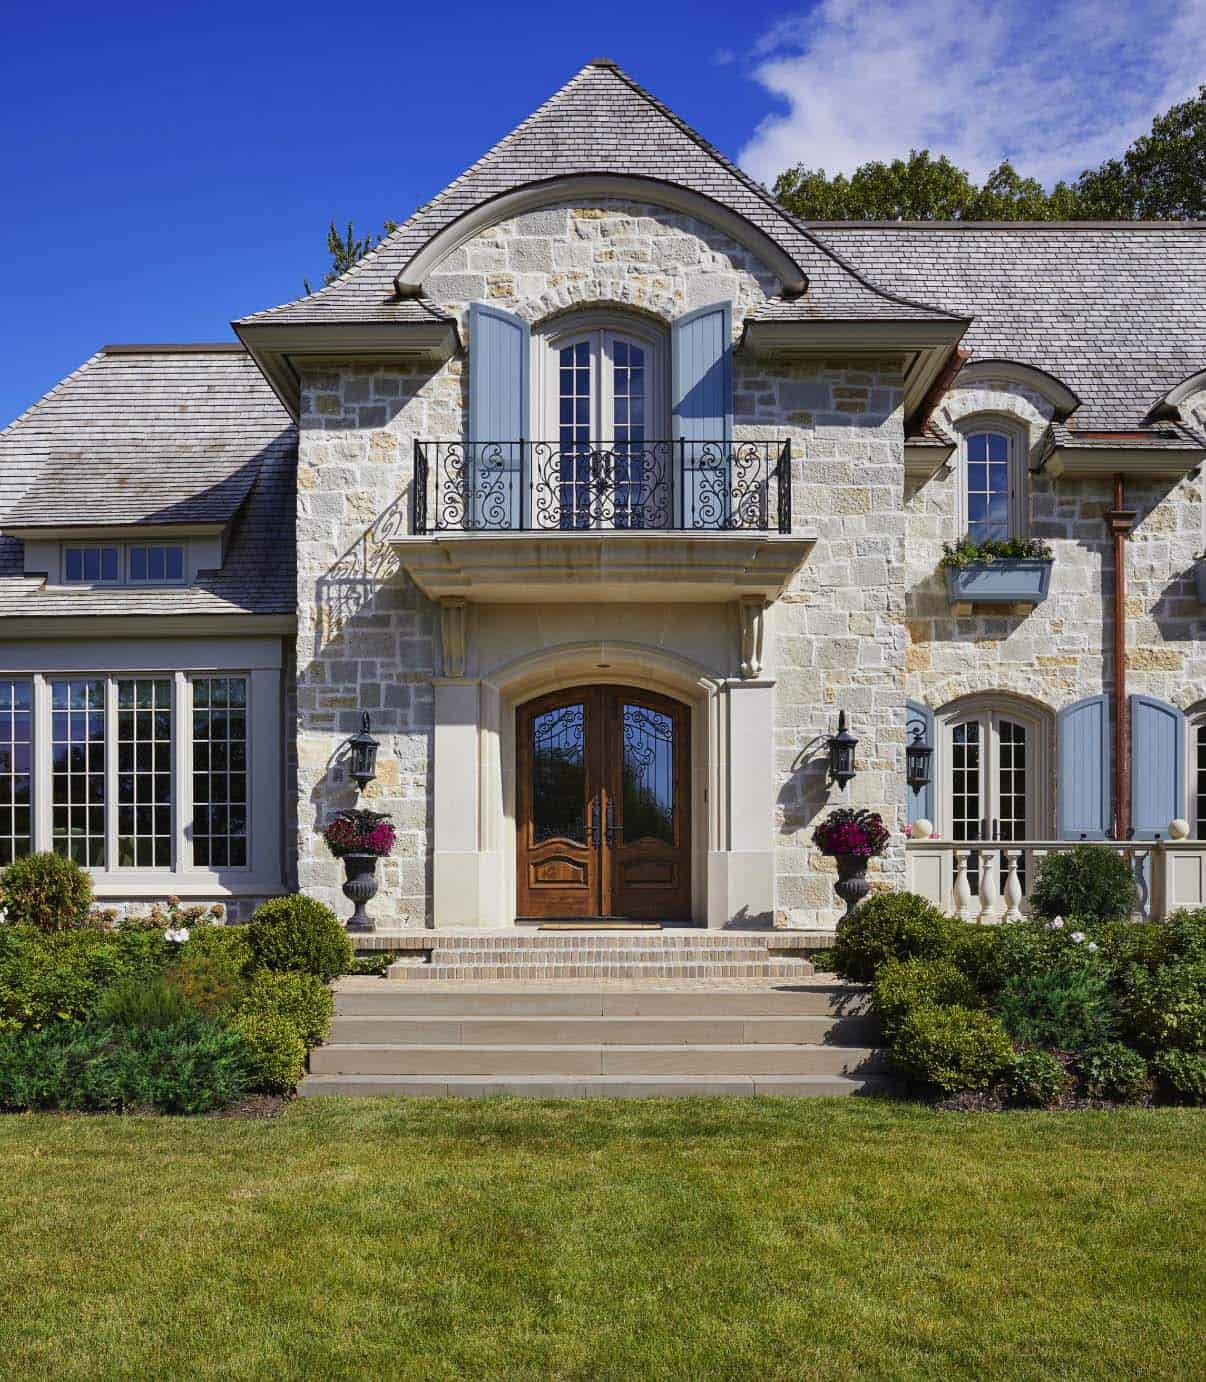 French Country Fridays 220: Savoring the Charm of French Inspired Decor